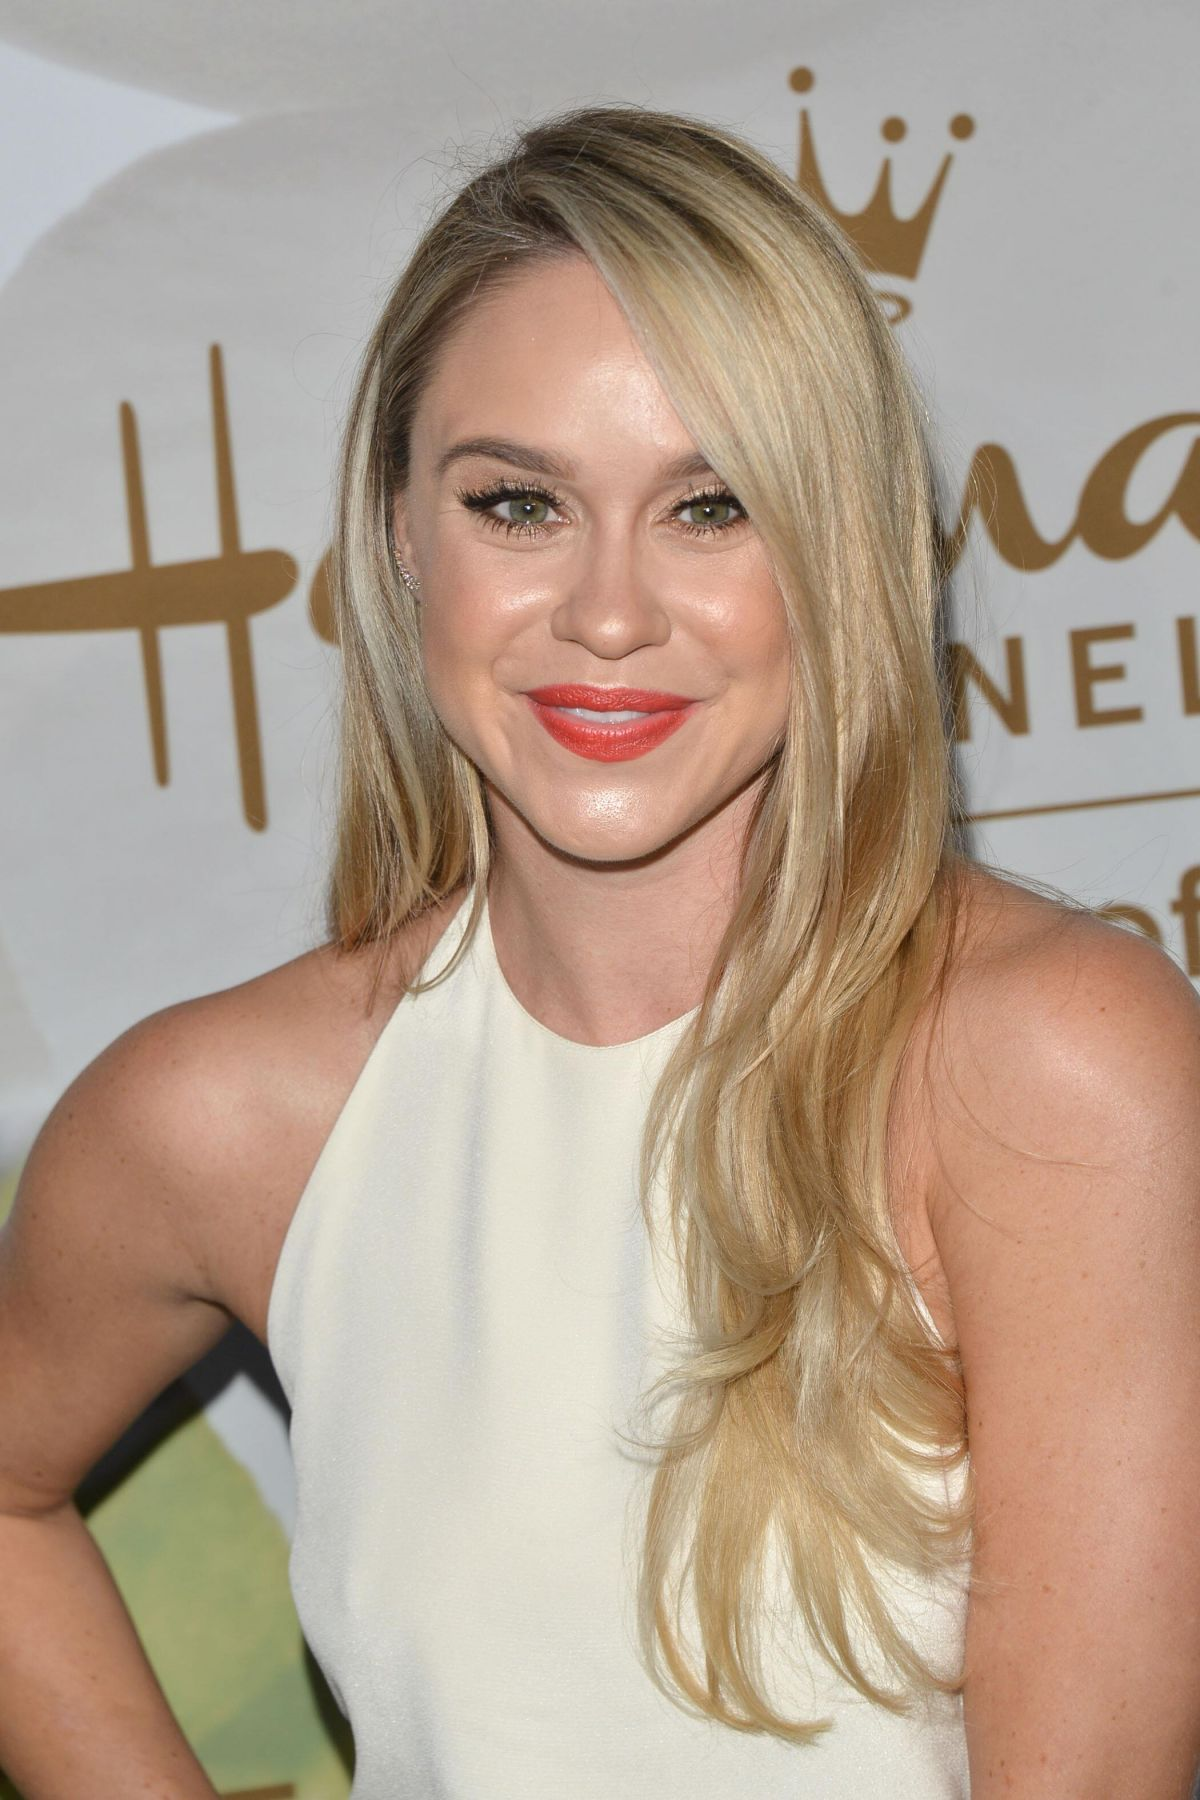 BECCA TOBIN at Hallmark Event at TCA Summer Tour in Los Angeles 07/27/2017